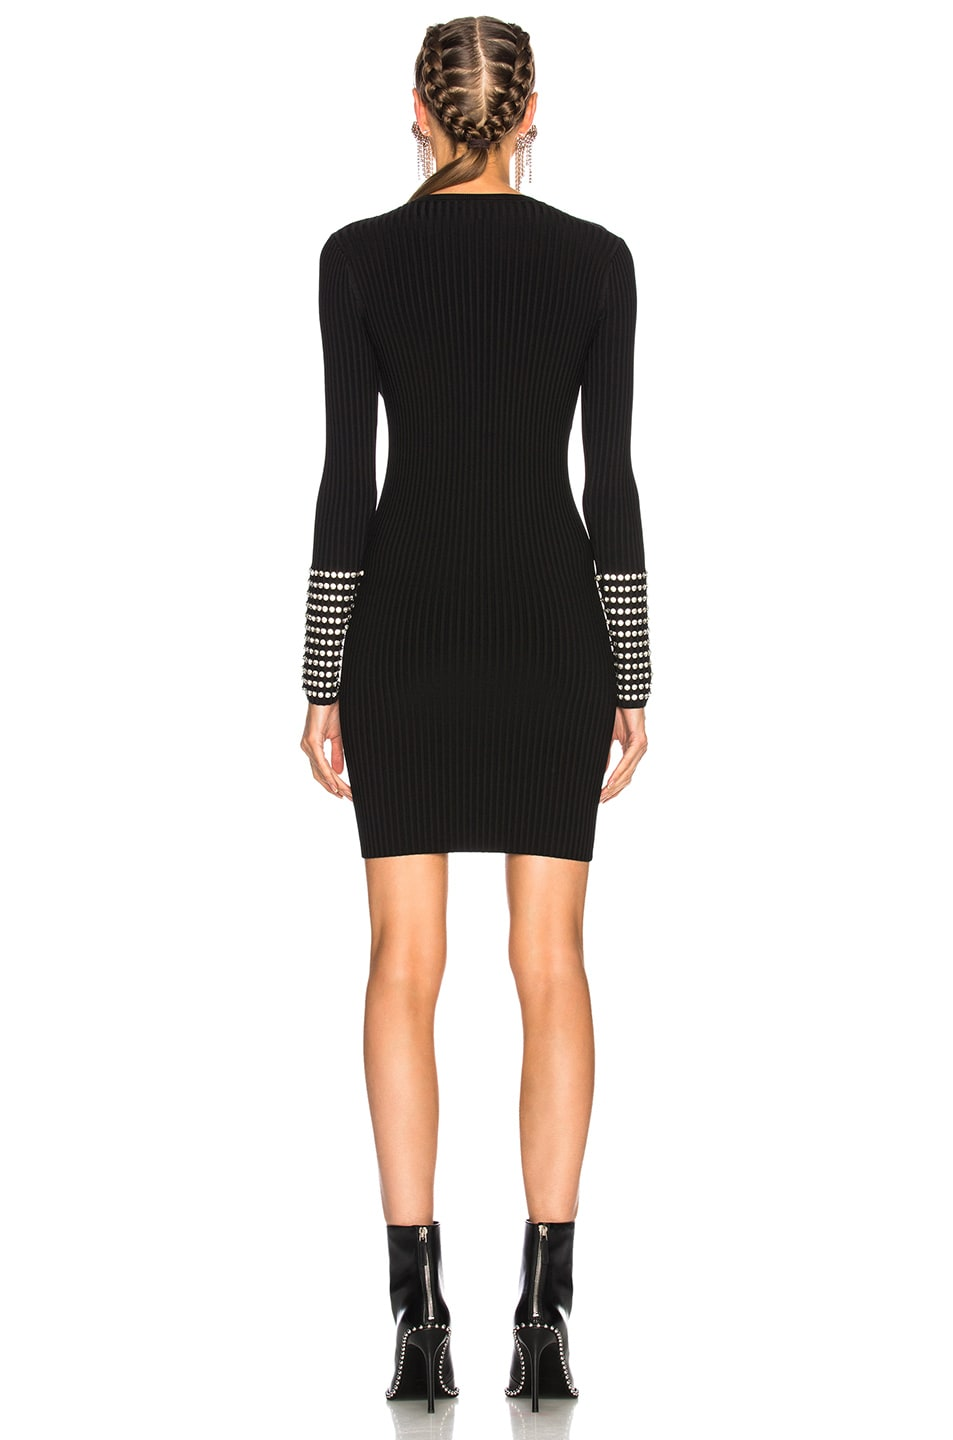 b7a8520a8be85 Image 3 of Alexander Wang Long Sleeve Dress with Crystal Cuff Detail in  Black